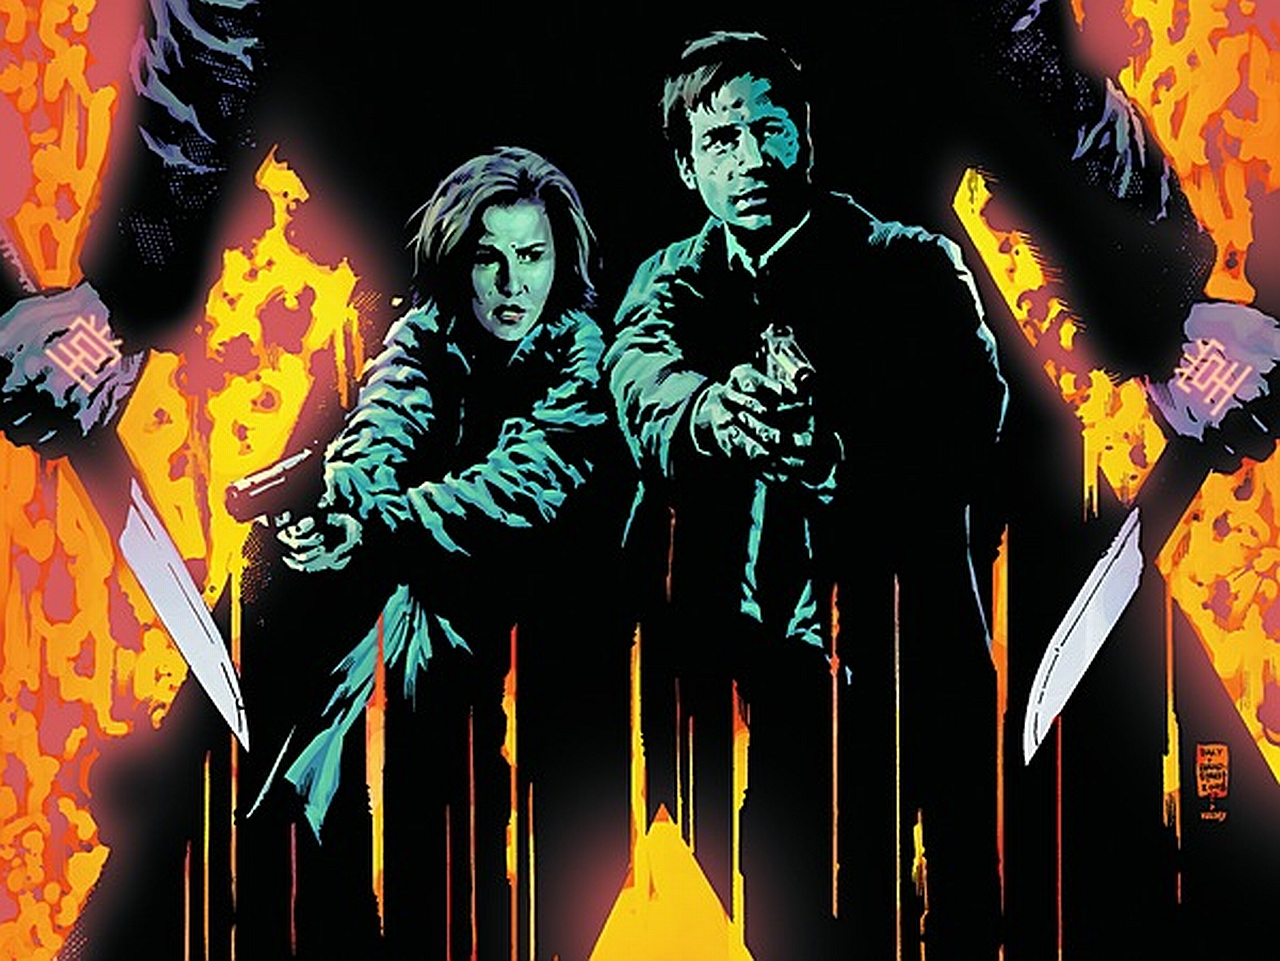 Coders Wallpaper Abyss Explore the Collection The X Files Comics X 1280x961